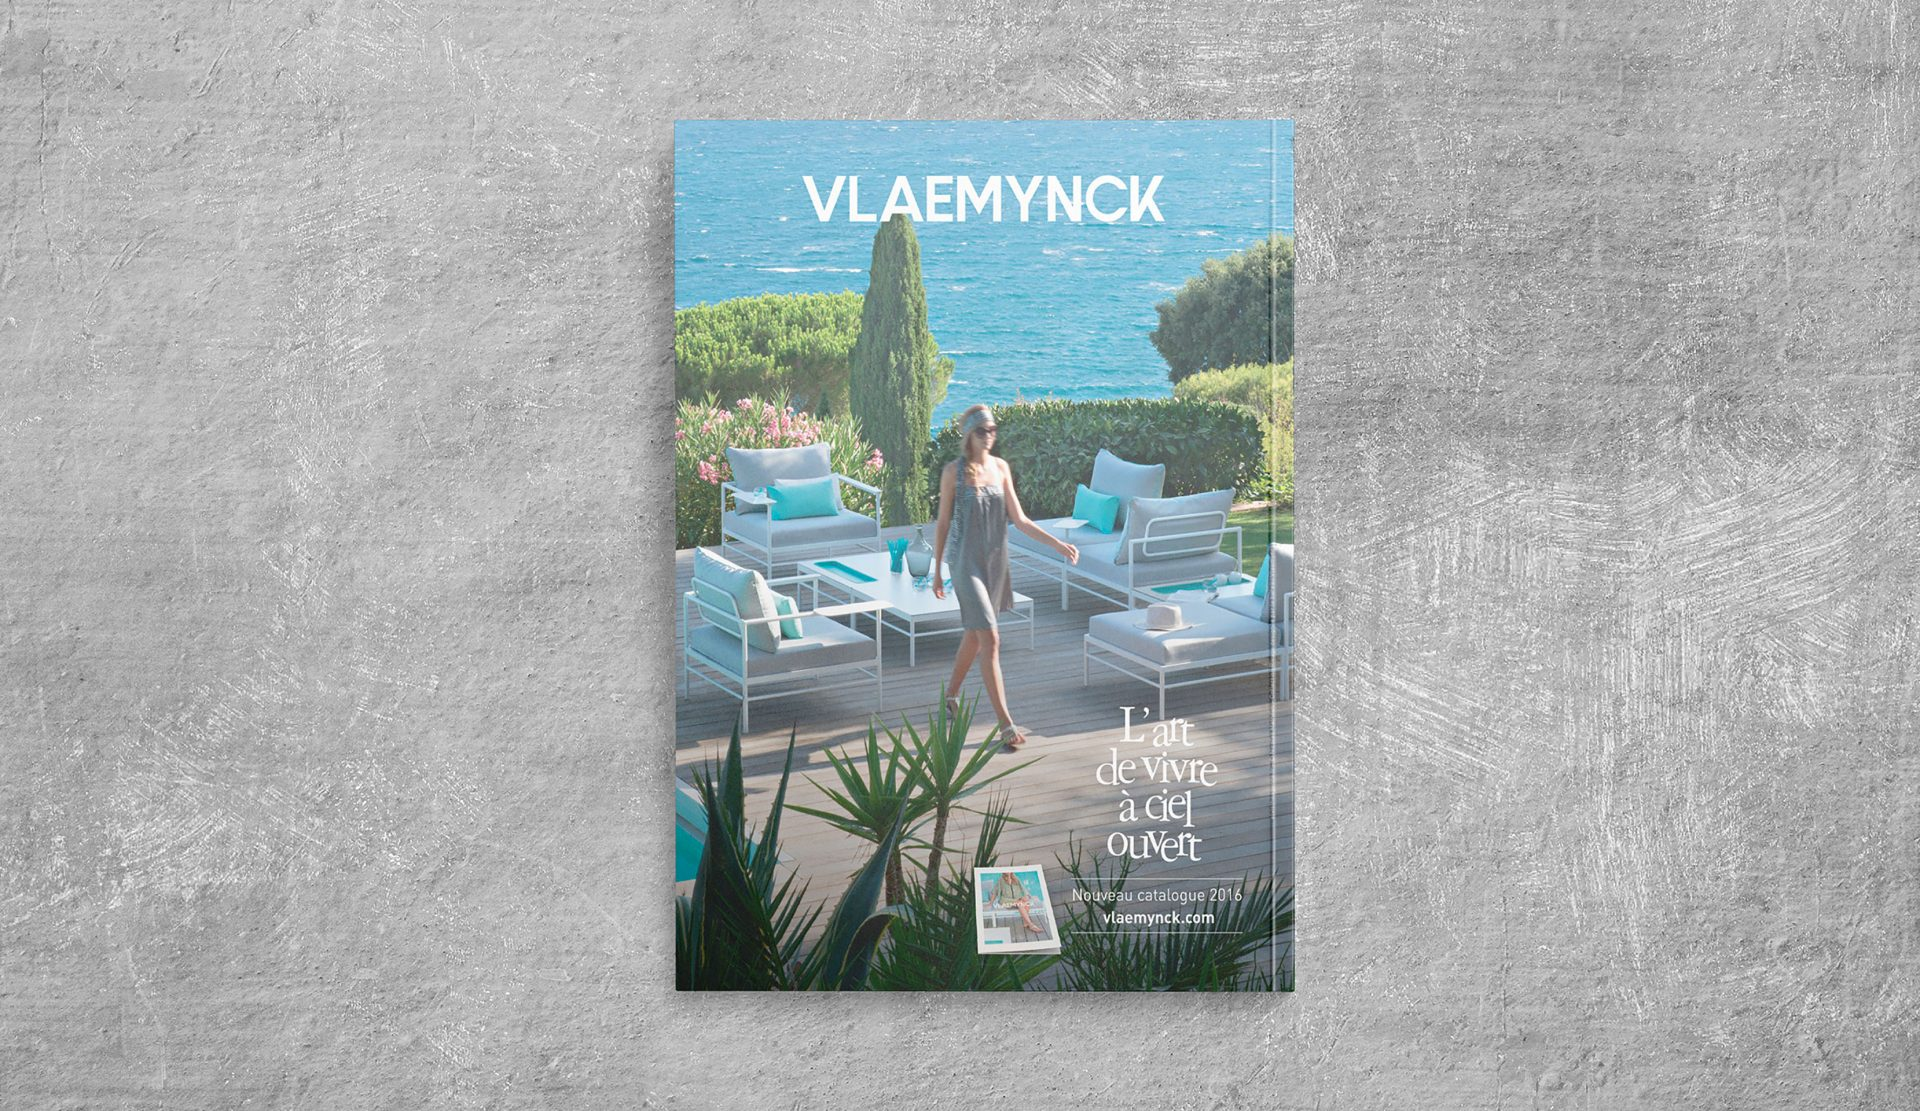 Édition / graphisme / shooting pour le magazine / catalogue album grand public de Vlaemynck